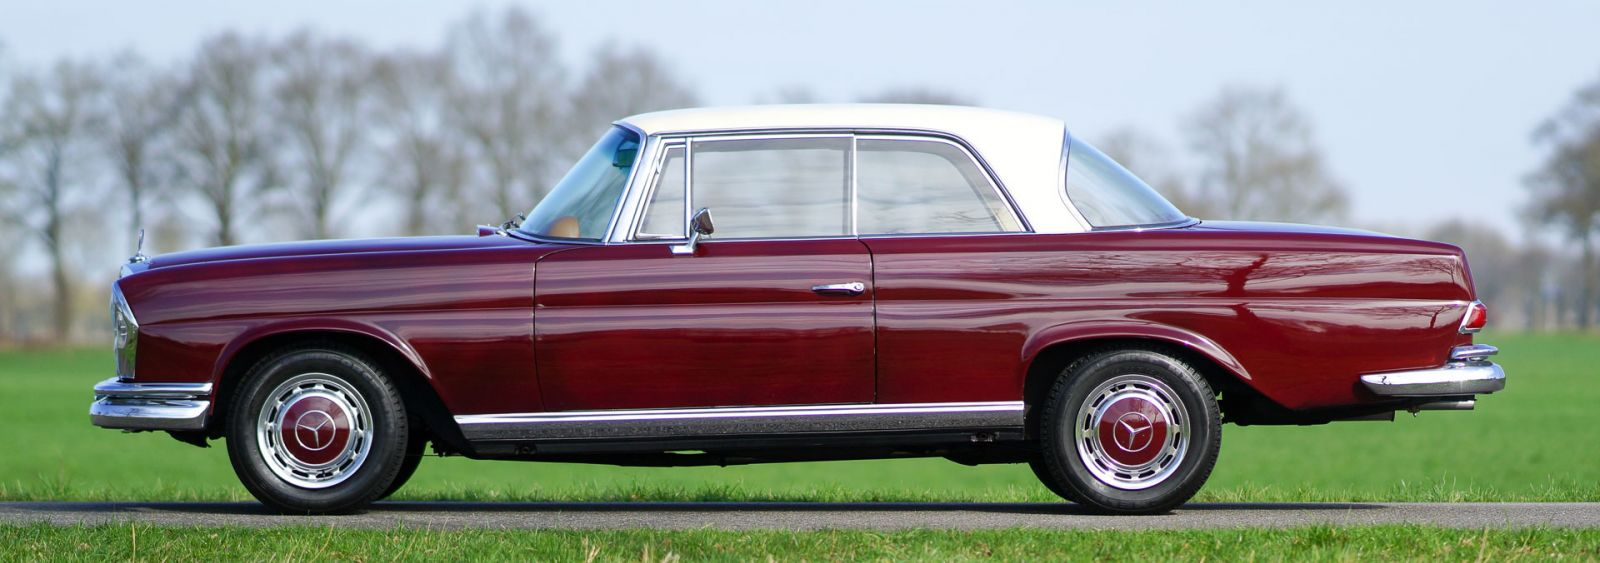 Mercedes benz 250 se coupe 1968 classicargarage fr for Mercedes benz 250 se